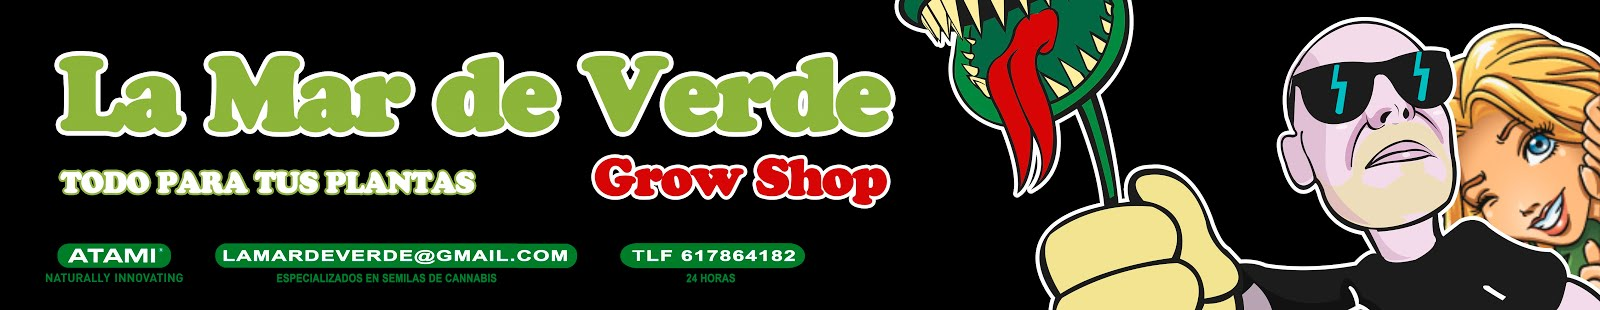 LA MAR DE VERDE GROW SHOP